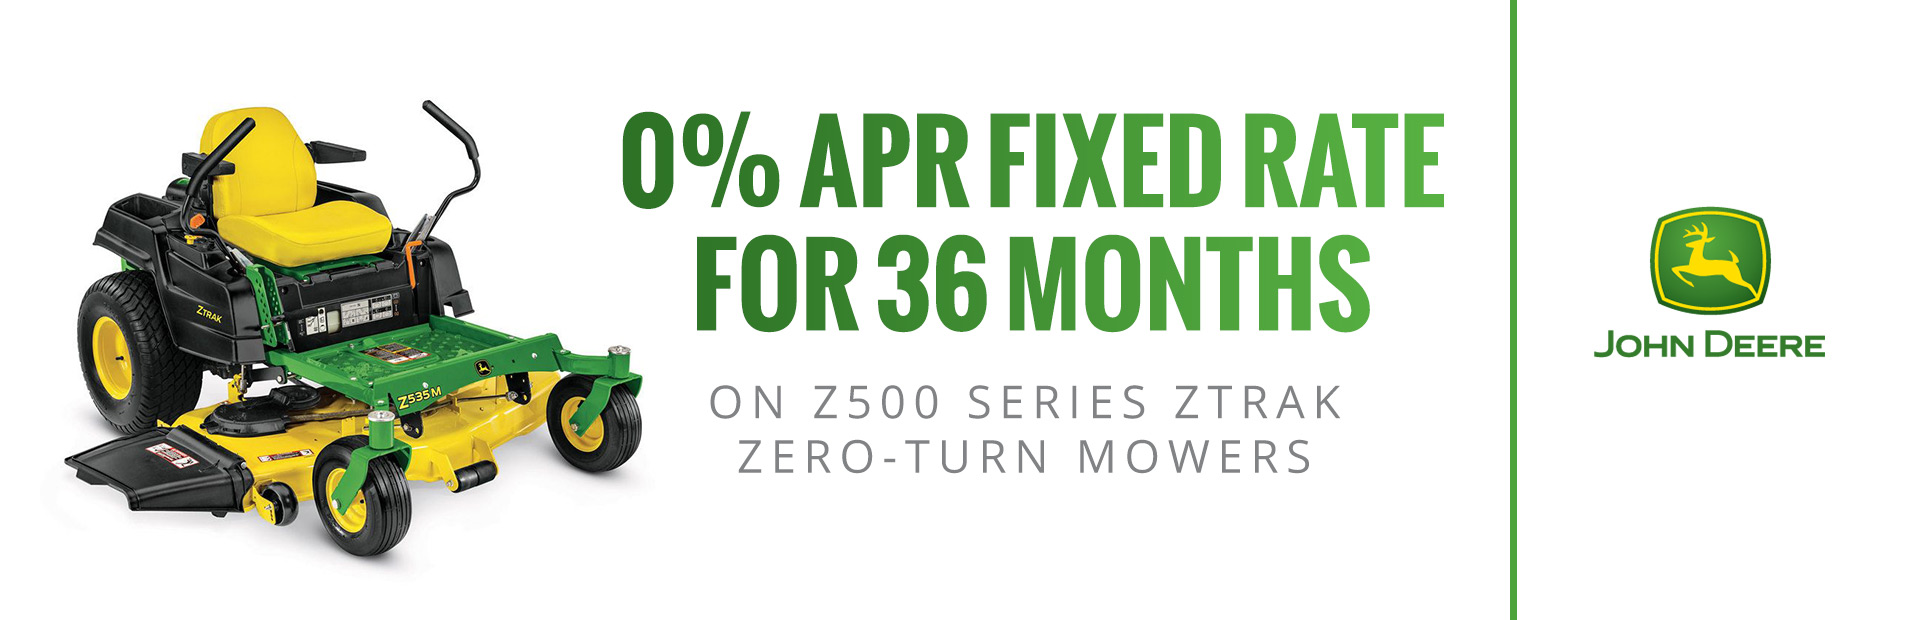 0% APR fixed rate for 36 months on Z500 Series ZT